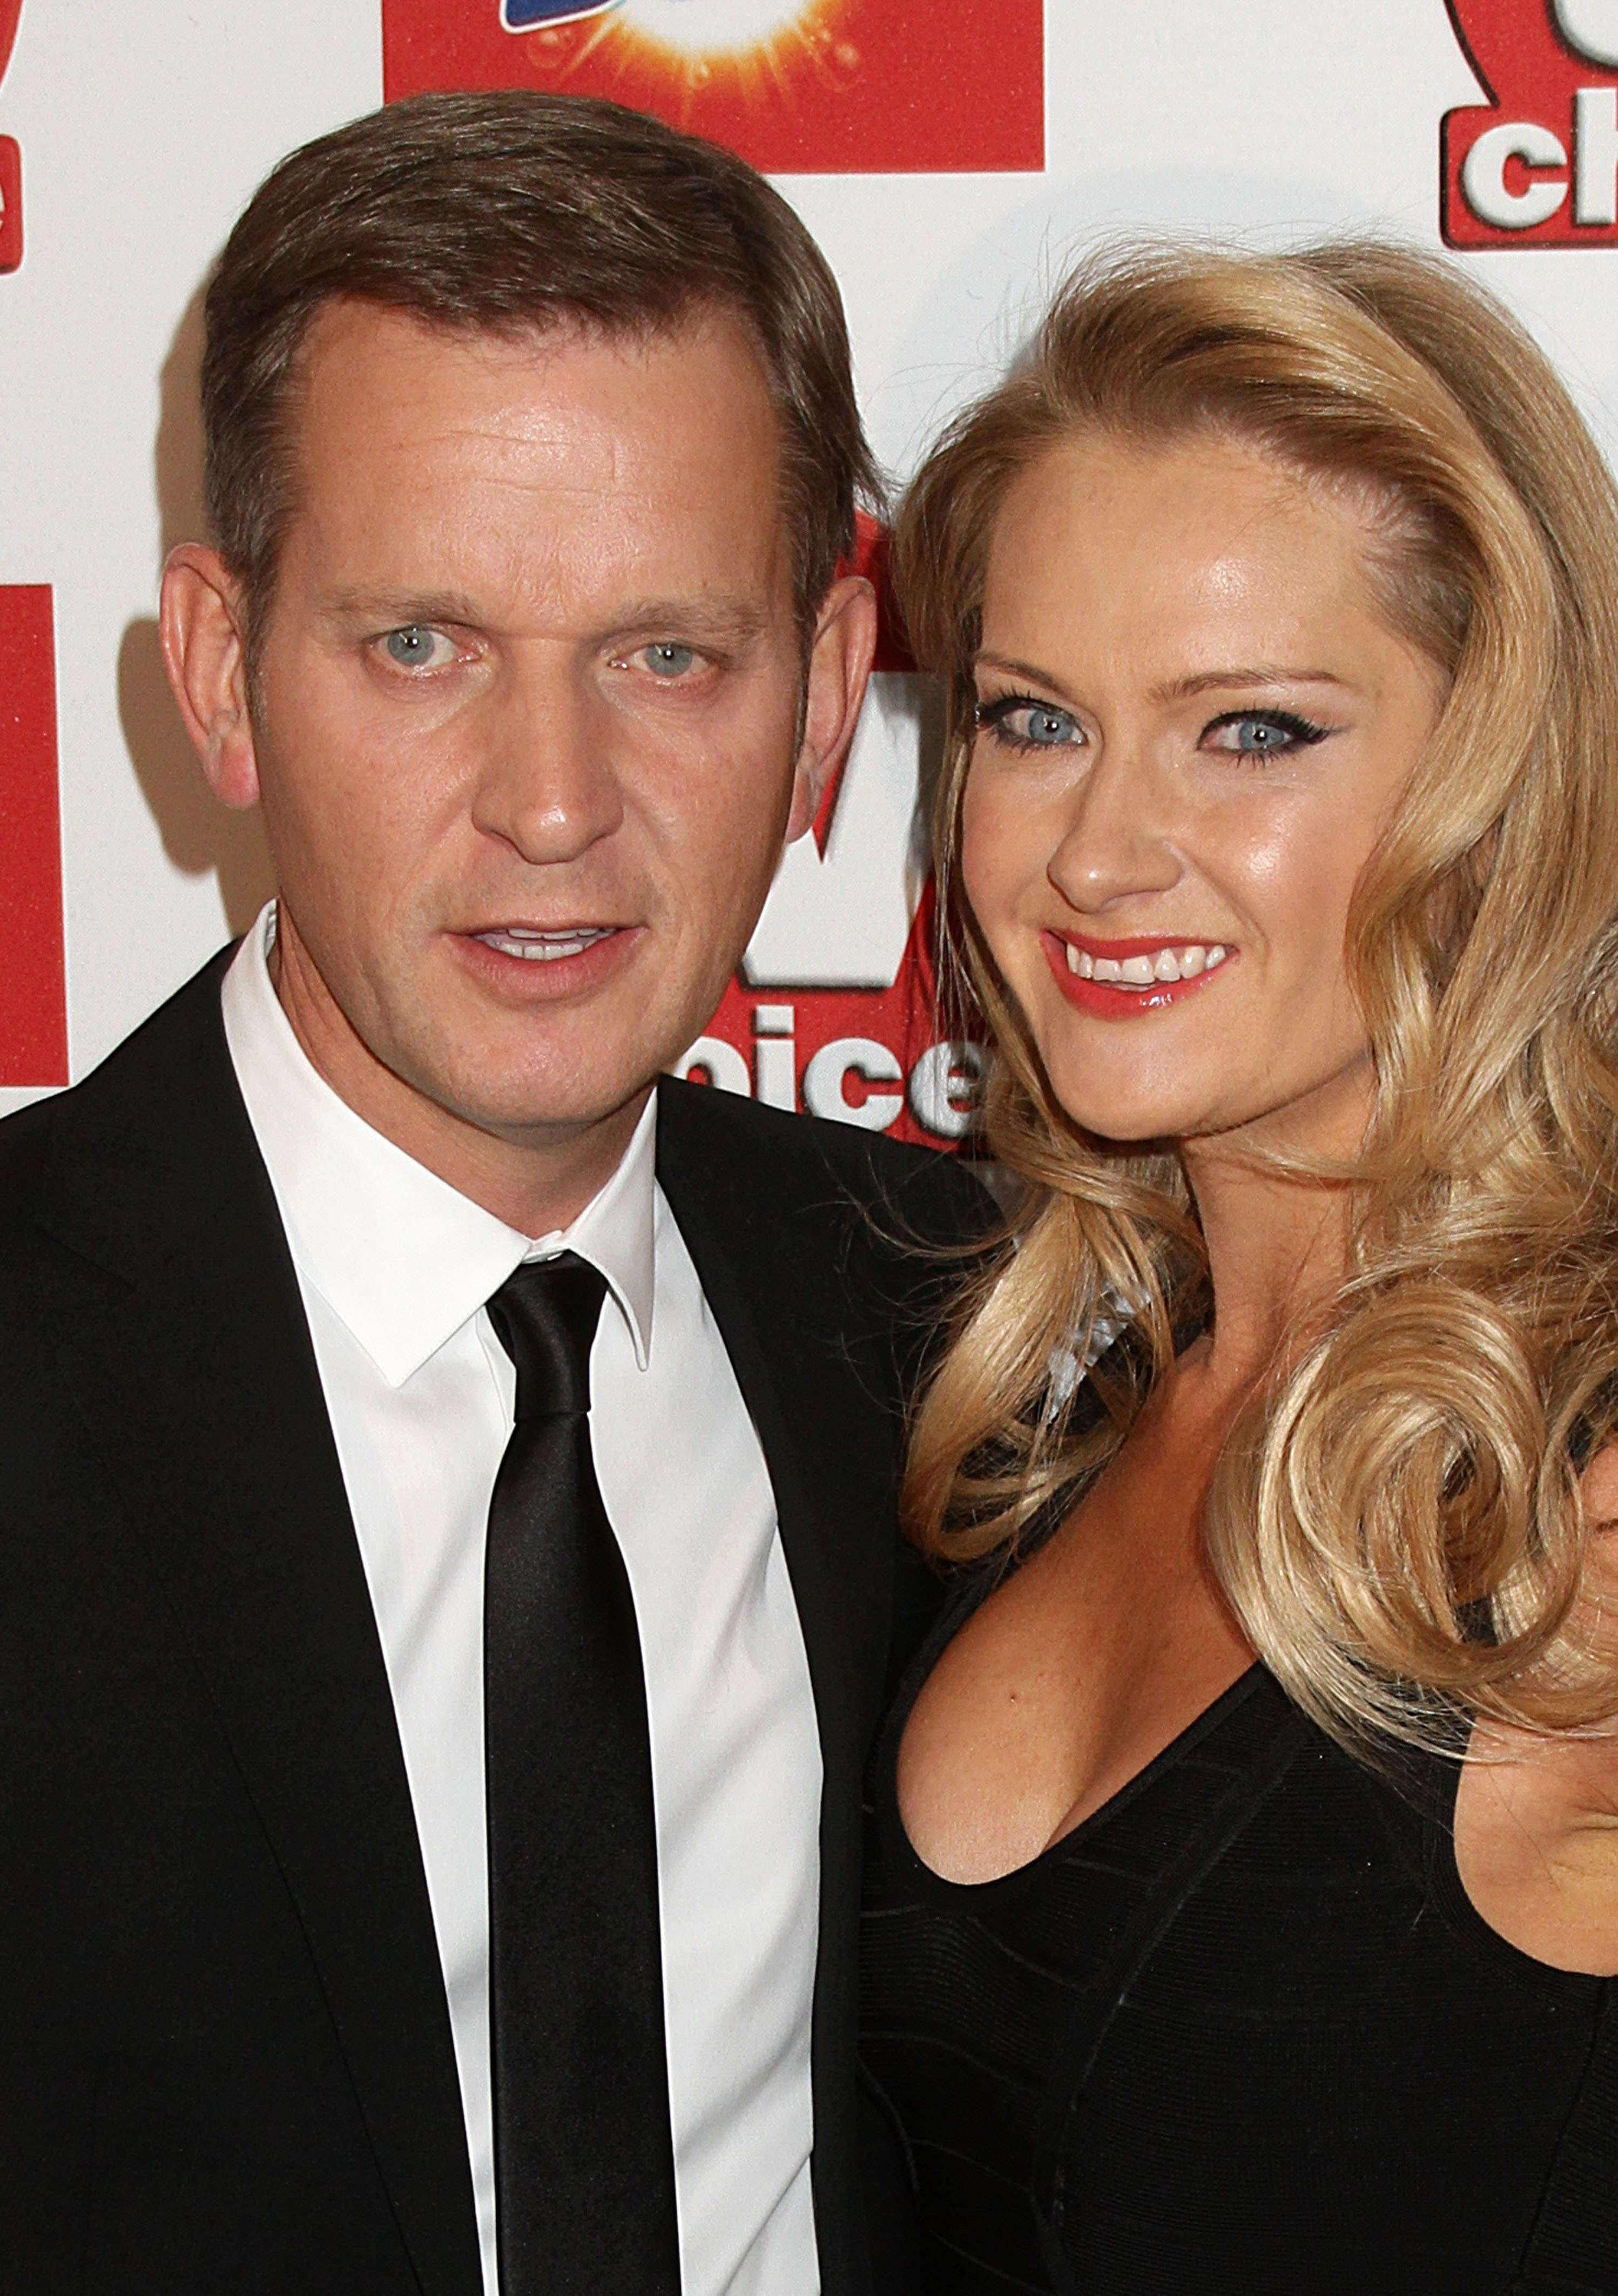 Jeremy Kyles Divorce Is Like An Episode Of His TV Show kyle55